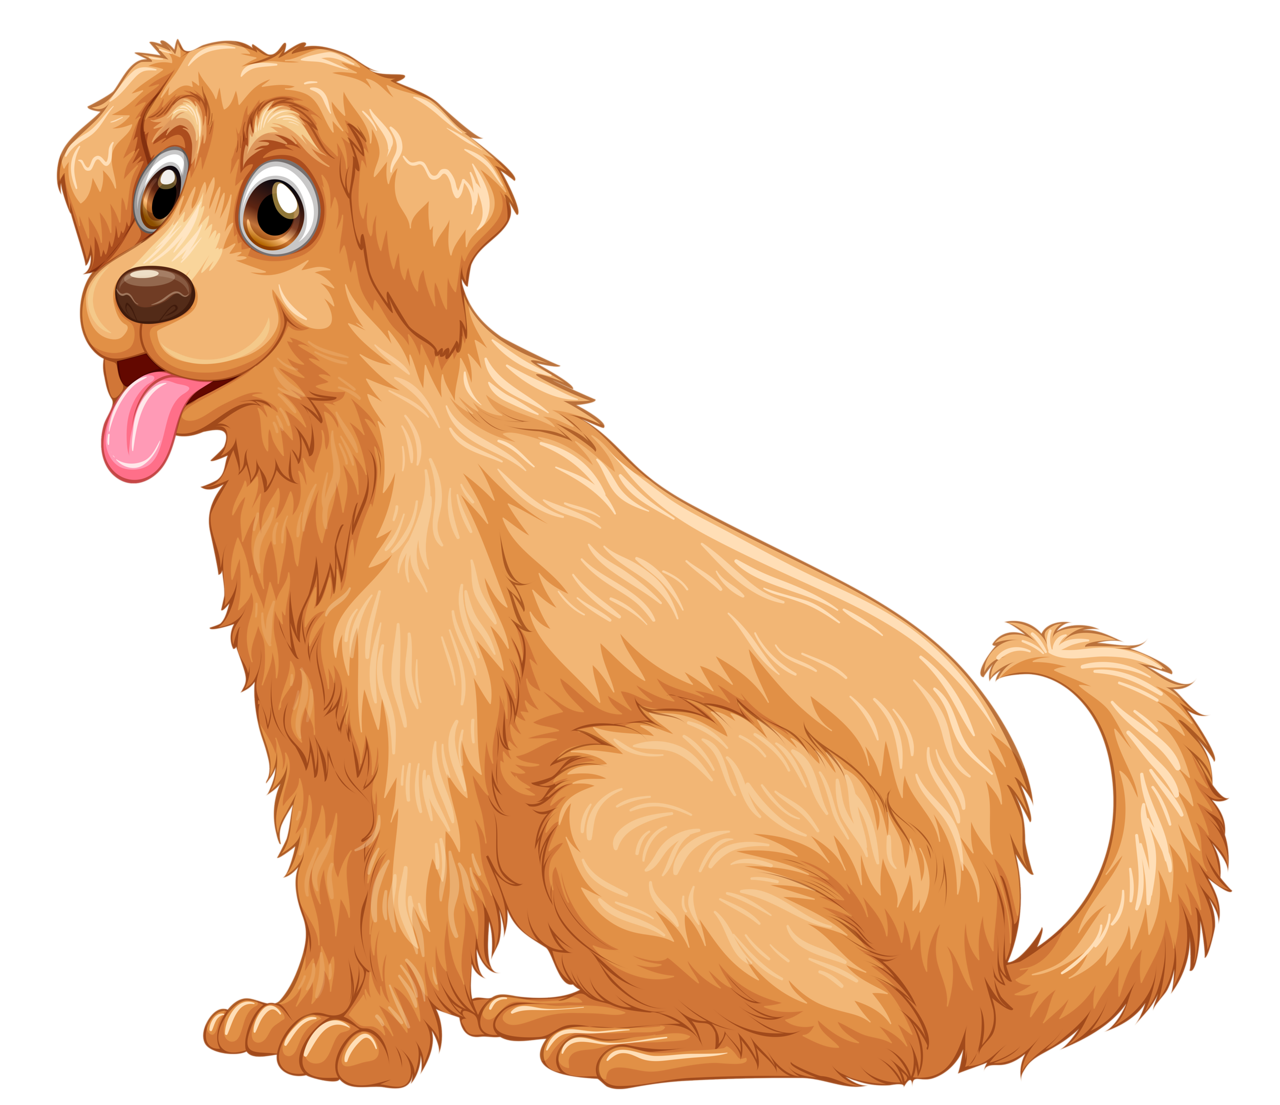 Clipart Puppy Golden Doodle Clipart Puppy Golden Doodle Transparent Free For Download On Webstockreview 2020